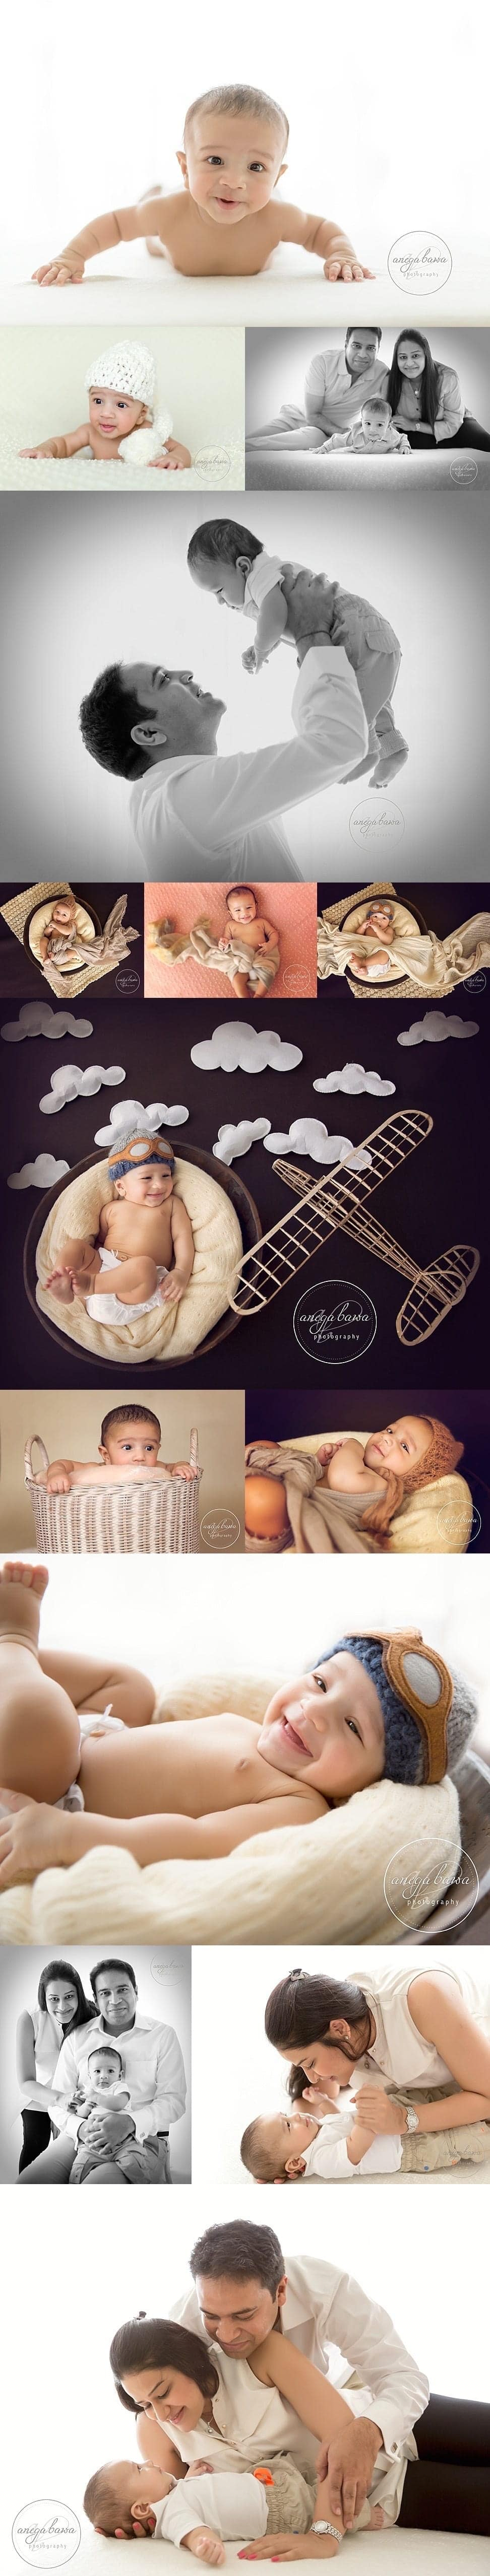 delhi baby photography - session - 4 months boy